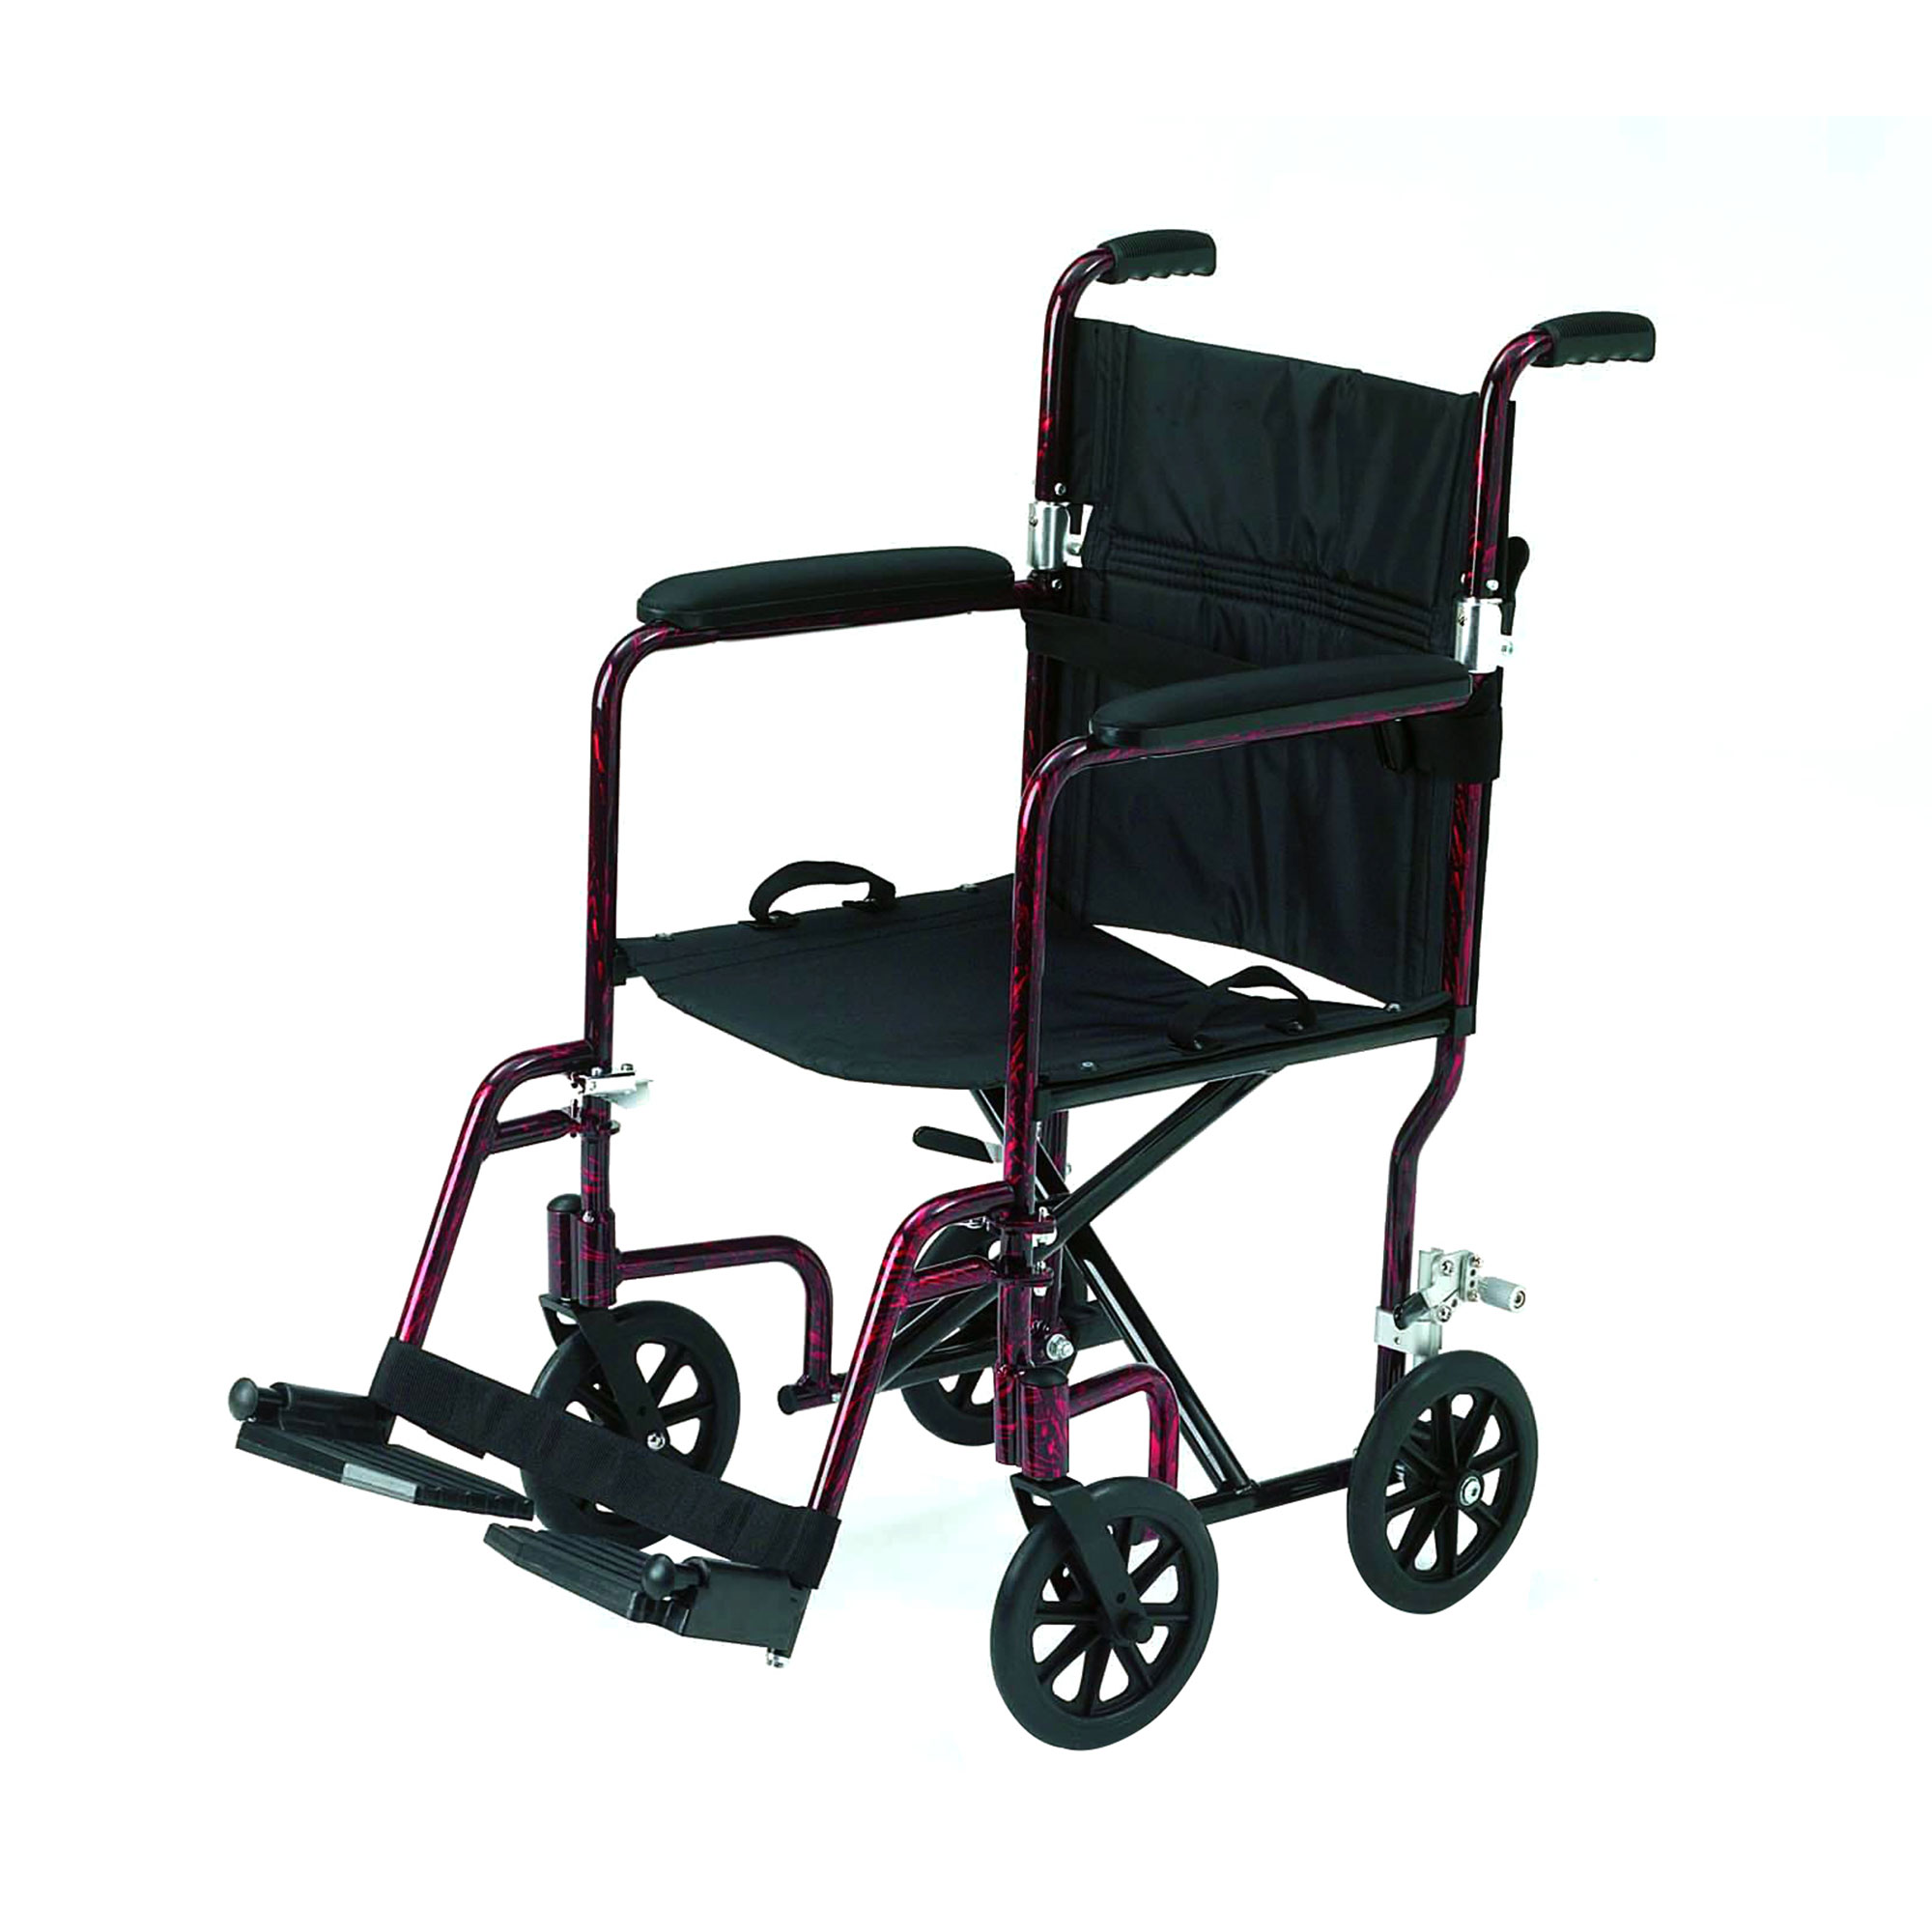 products scooter and chair wheelchairs service mobility kingsgrove wheelchair aids transport repair chairs sales